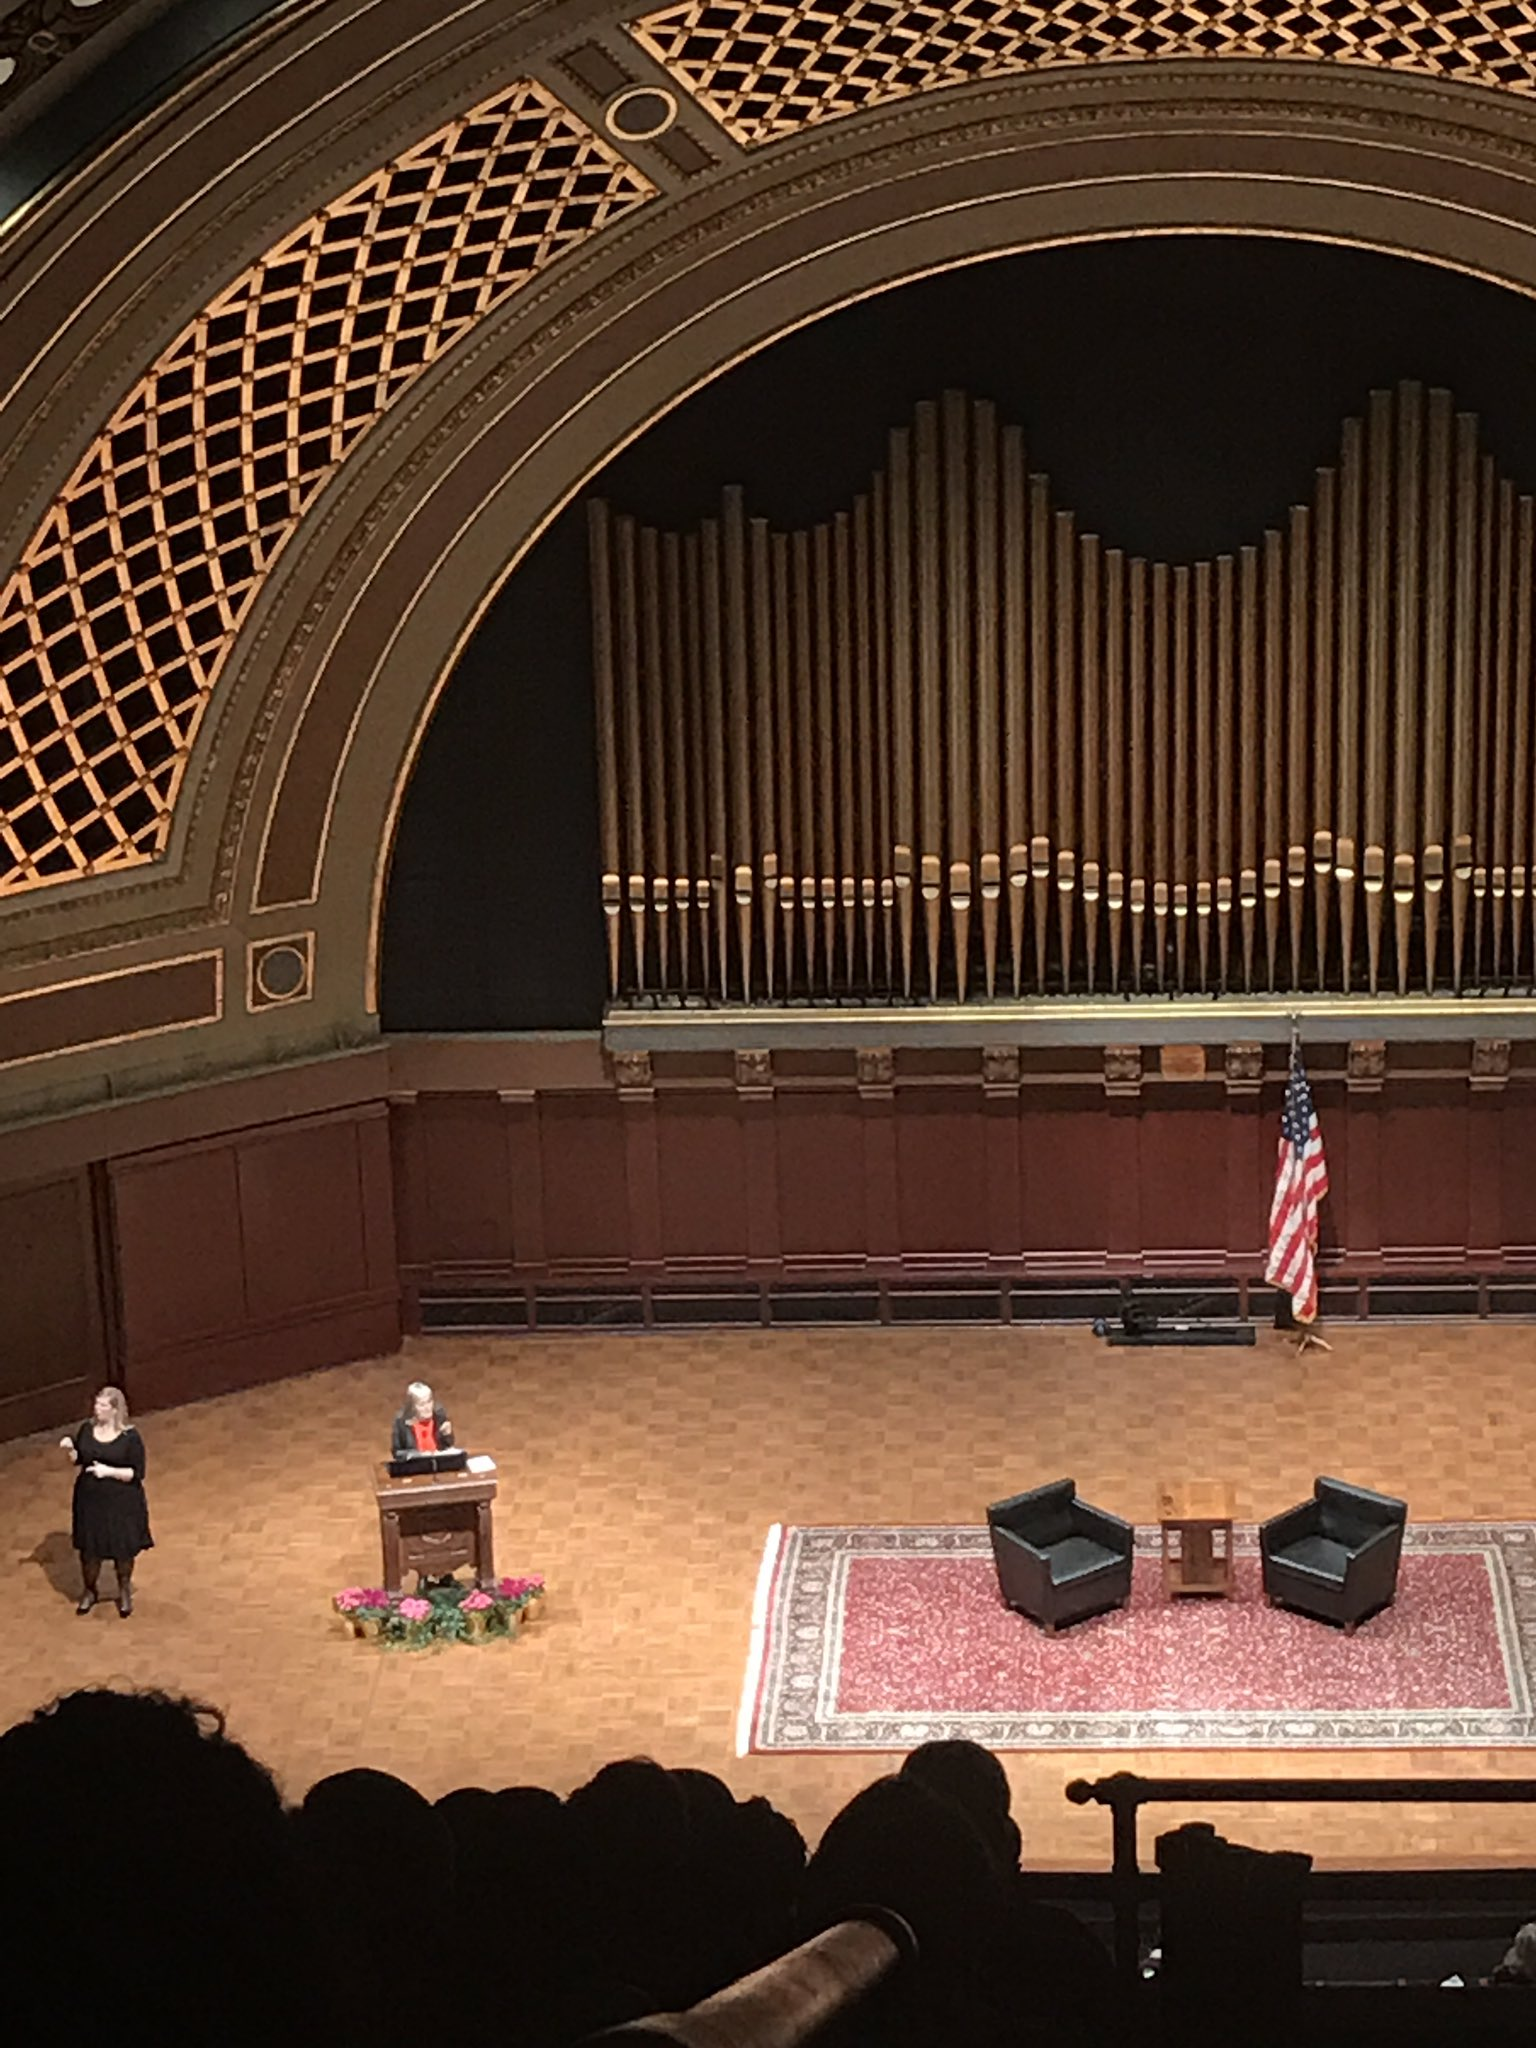 """Amy Goodman on fact-based journalism and John Lewis' history of """"action"""", on KKK in 2017 and the legacy of Dr. King. #UMichMLKDay2017 ❤️👏 https://t.co/cz1Gu55xvx"""